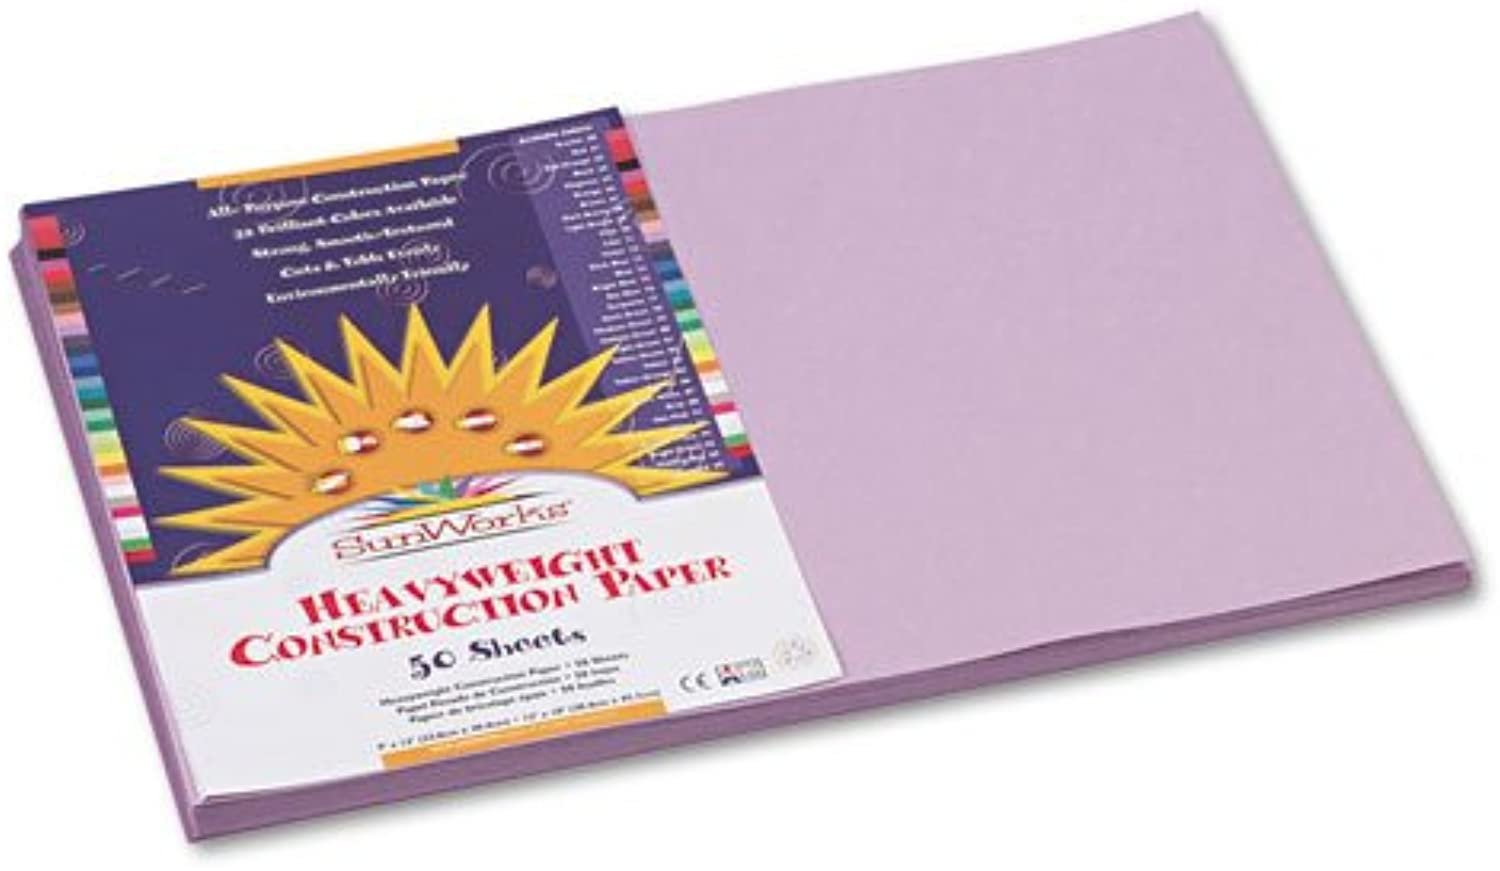 Pacon SunWorks 7107 Construction Paper, 58 lbs., 12 x 18, Lilac, 50 Sheets Pack (PAC7107) by Sunworks B01M3YUBYF  | Angenehmes Aussehen